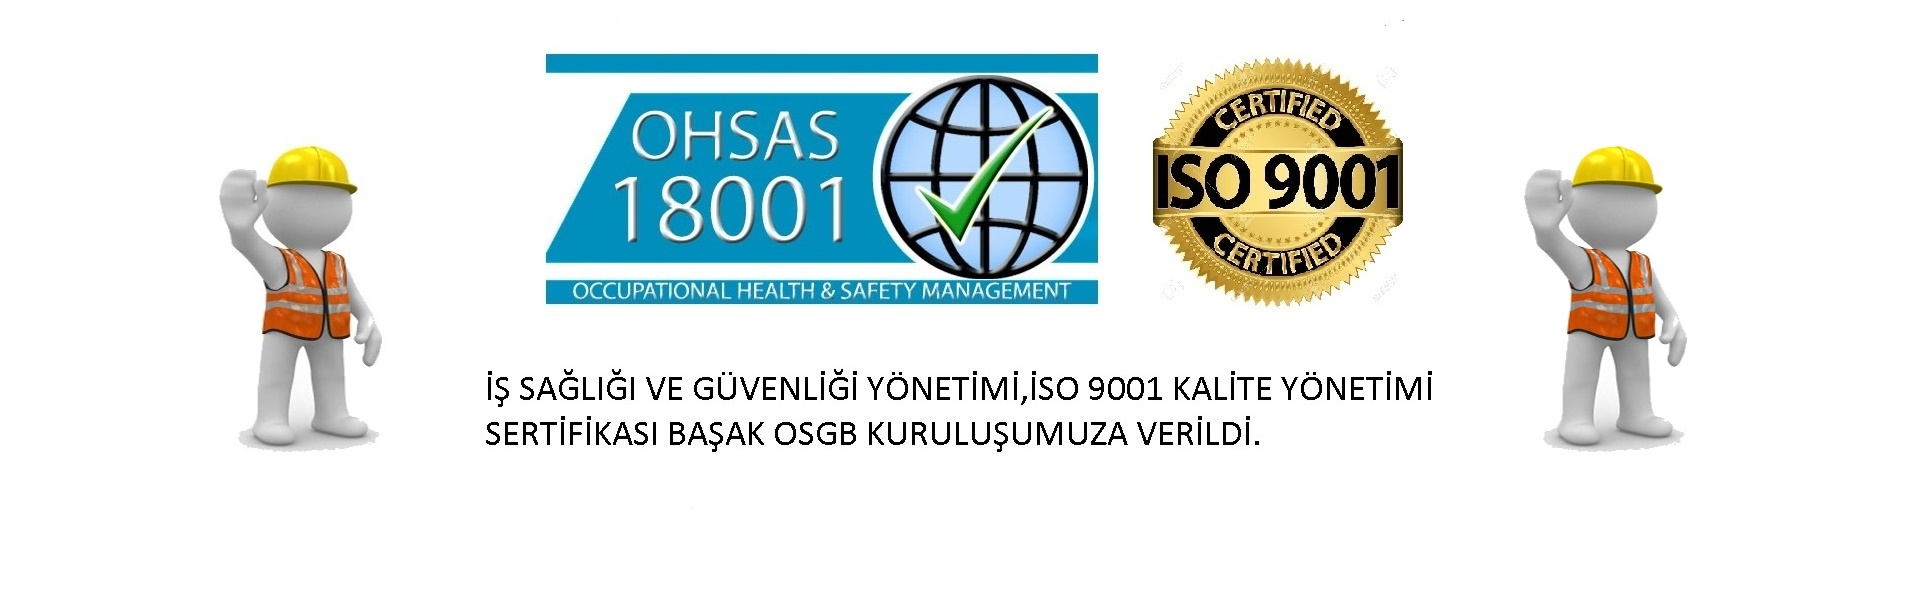 İSO 9001,OHSAS 18001